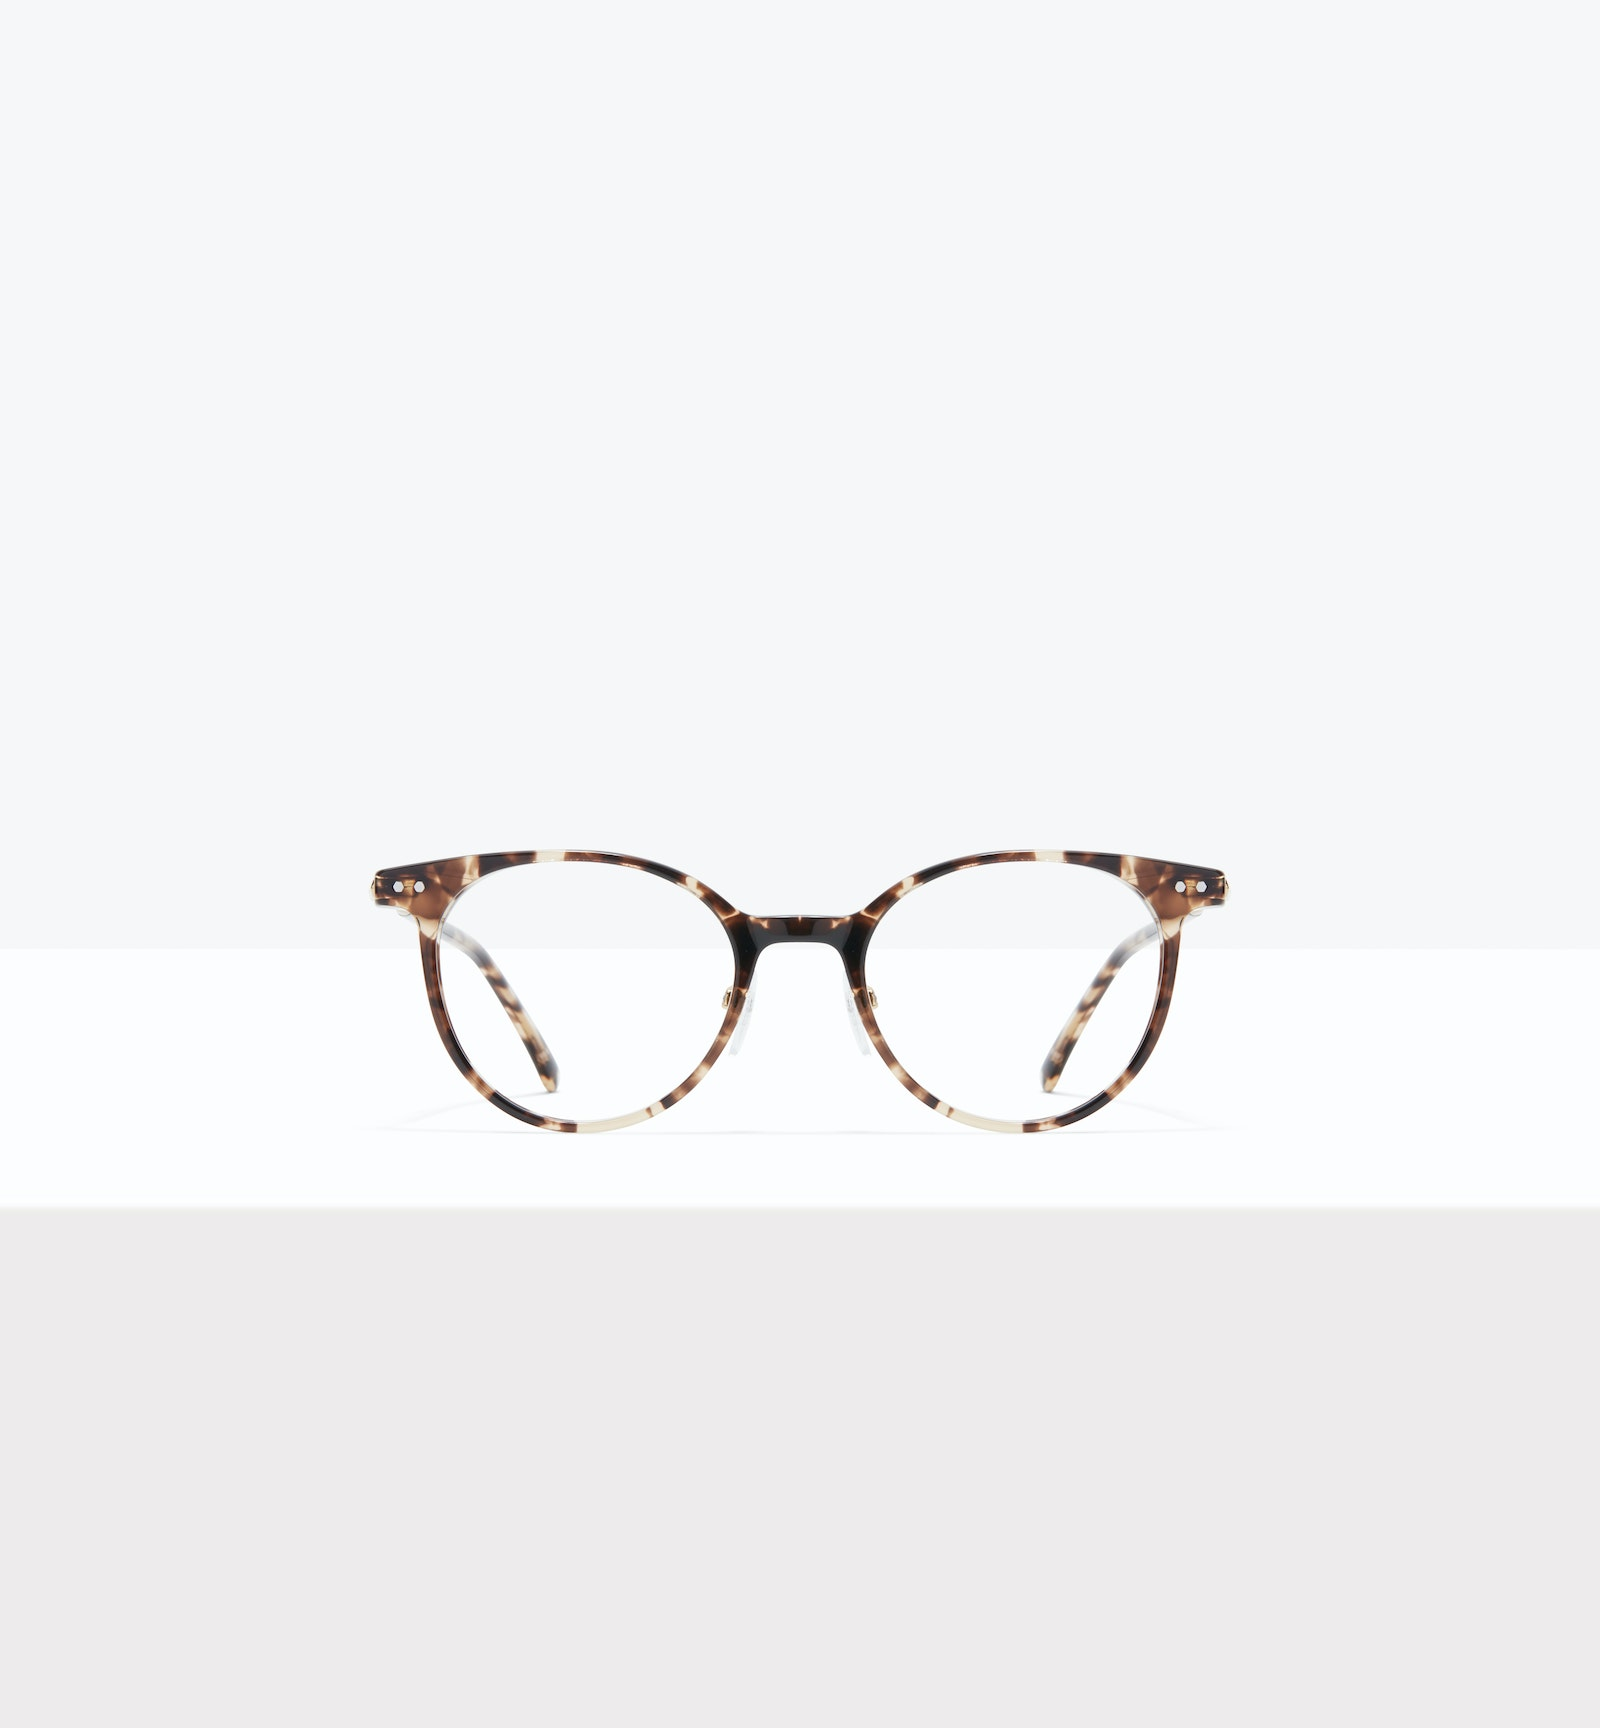 Affordable Fashion Glasses Round Eyeglasses Women Lightheart L Leopard